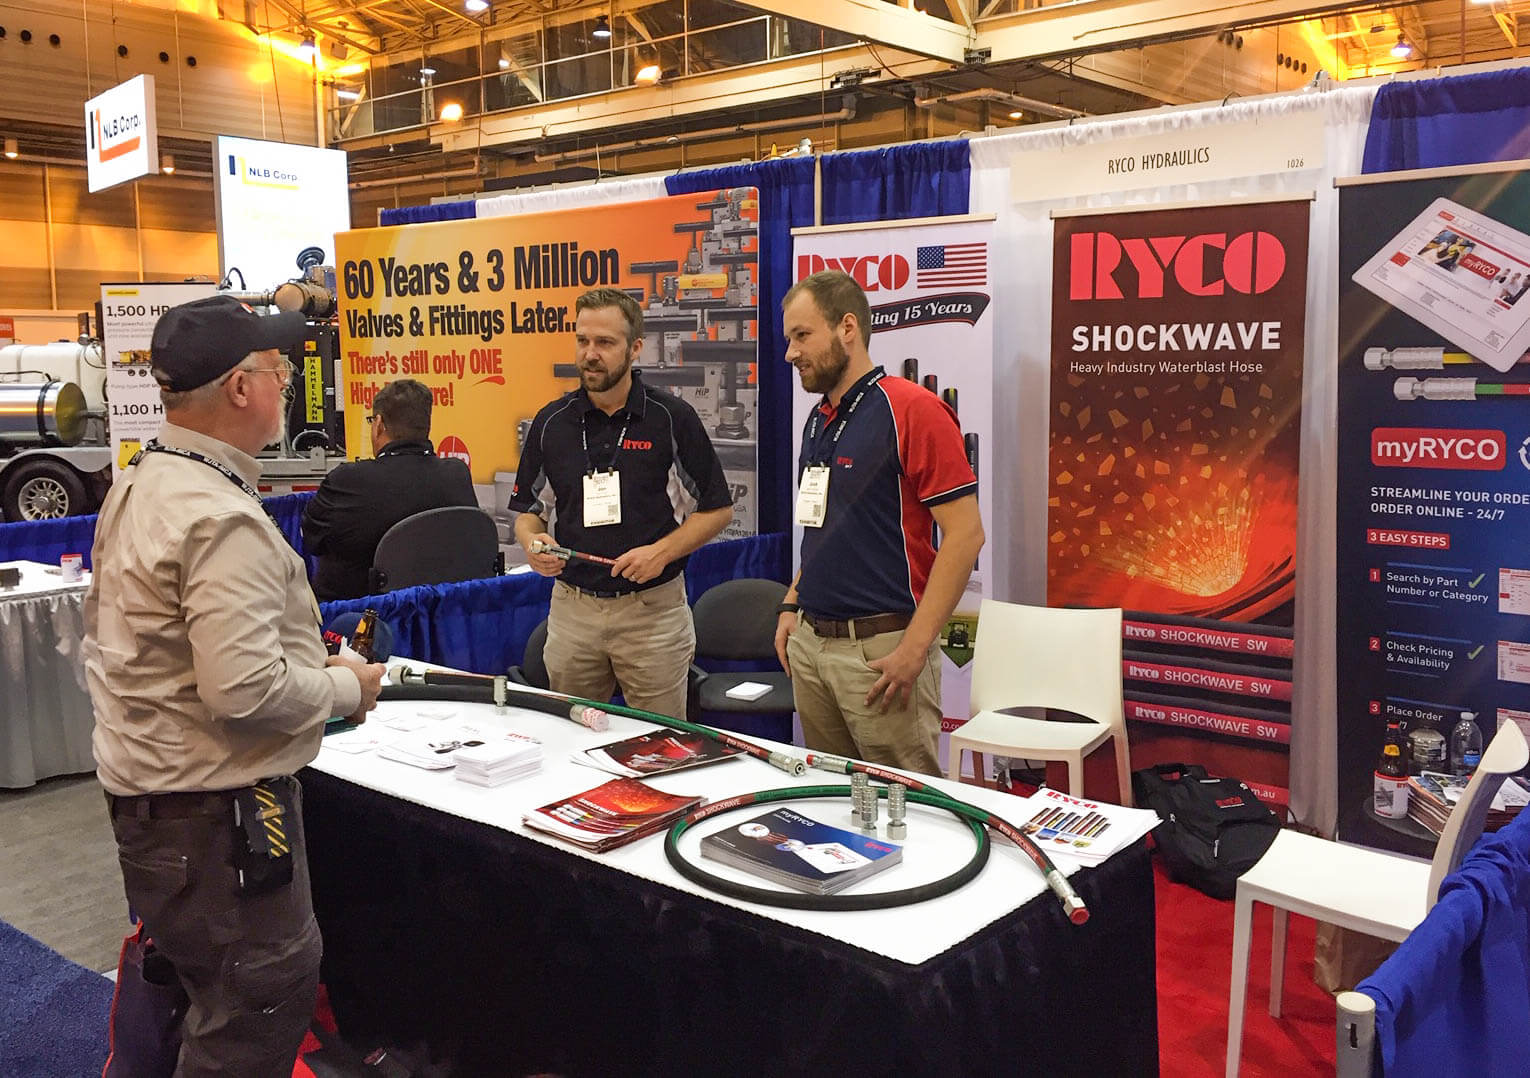 Discover RYCO Shockwave and Jetstorm